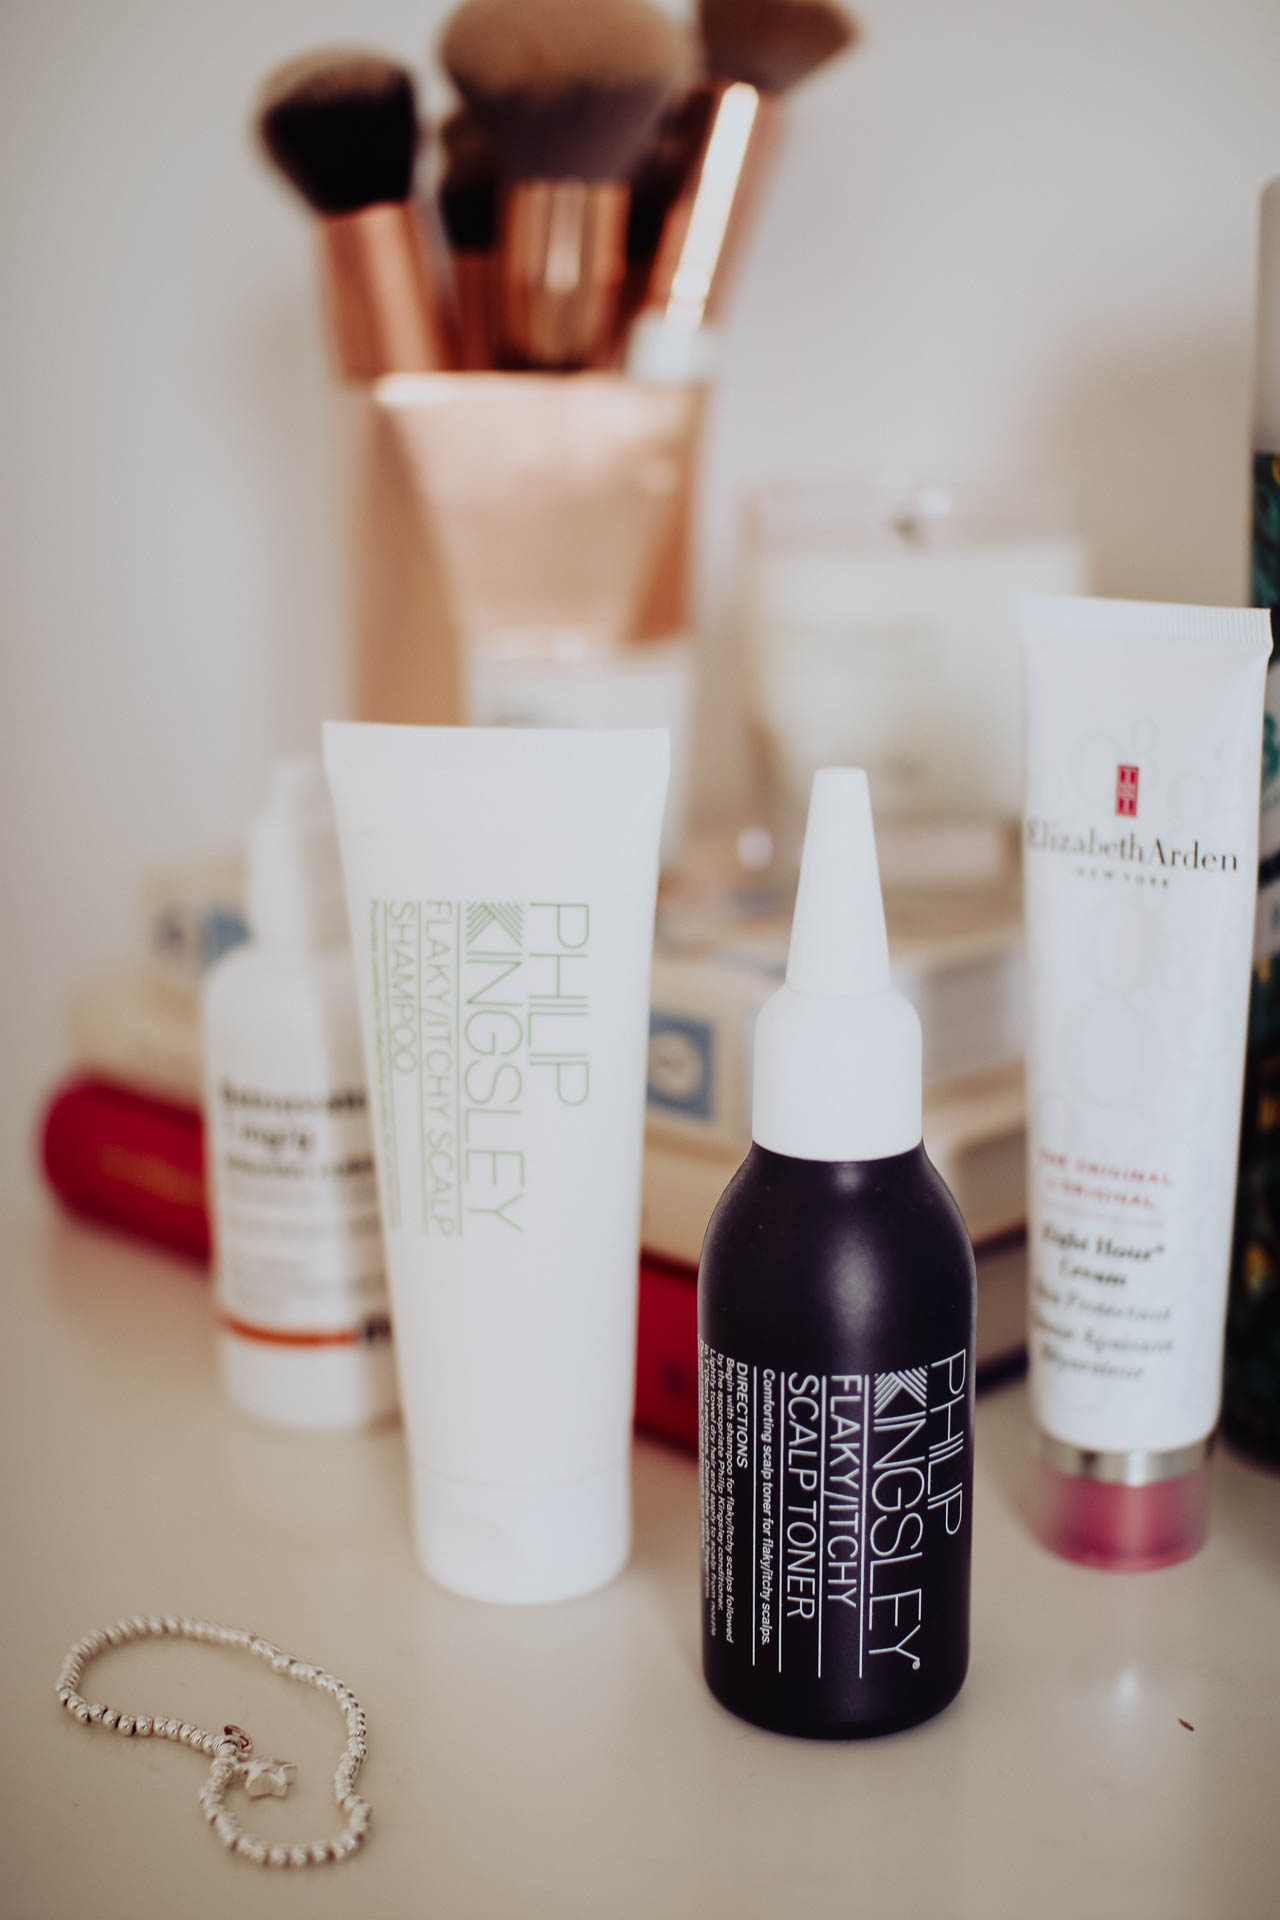 products for an irritated scalp